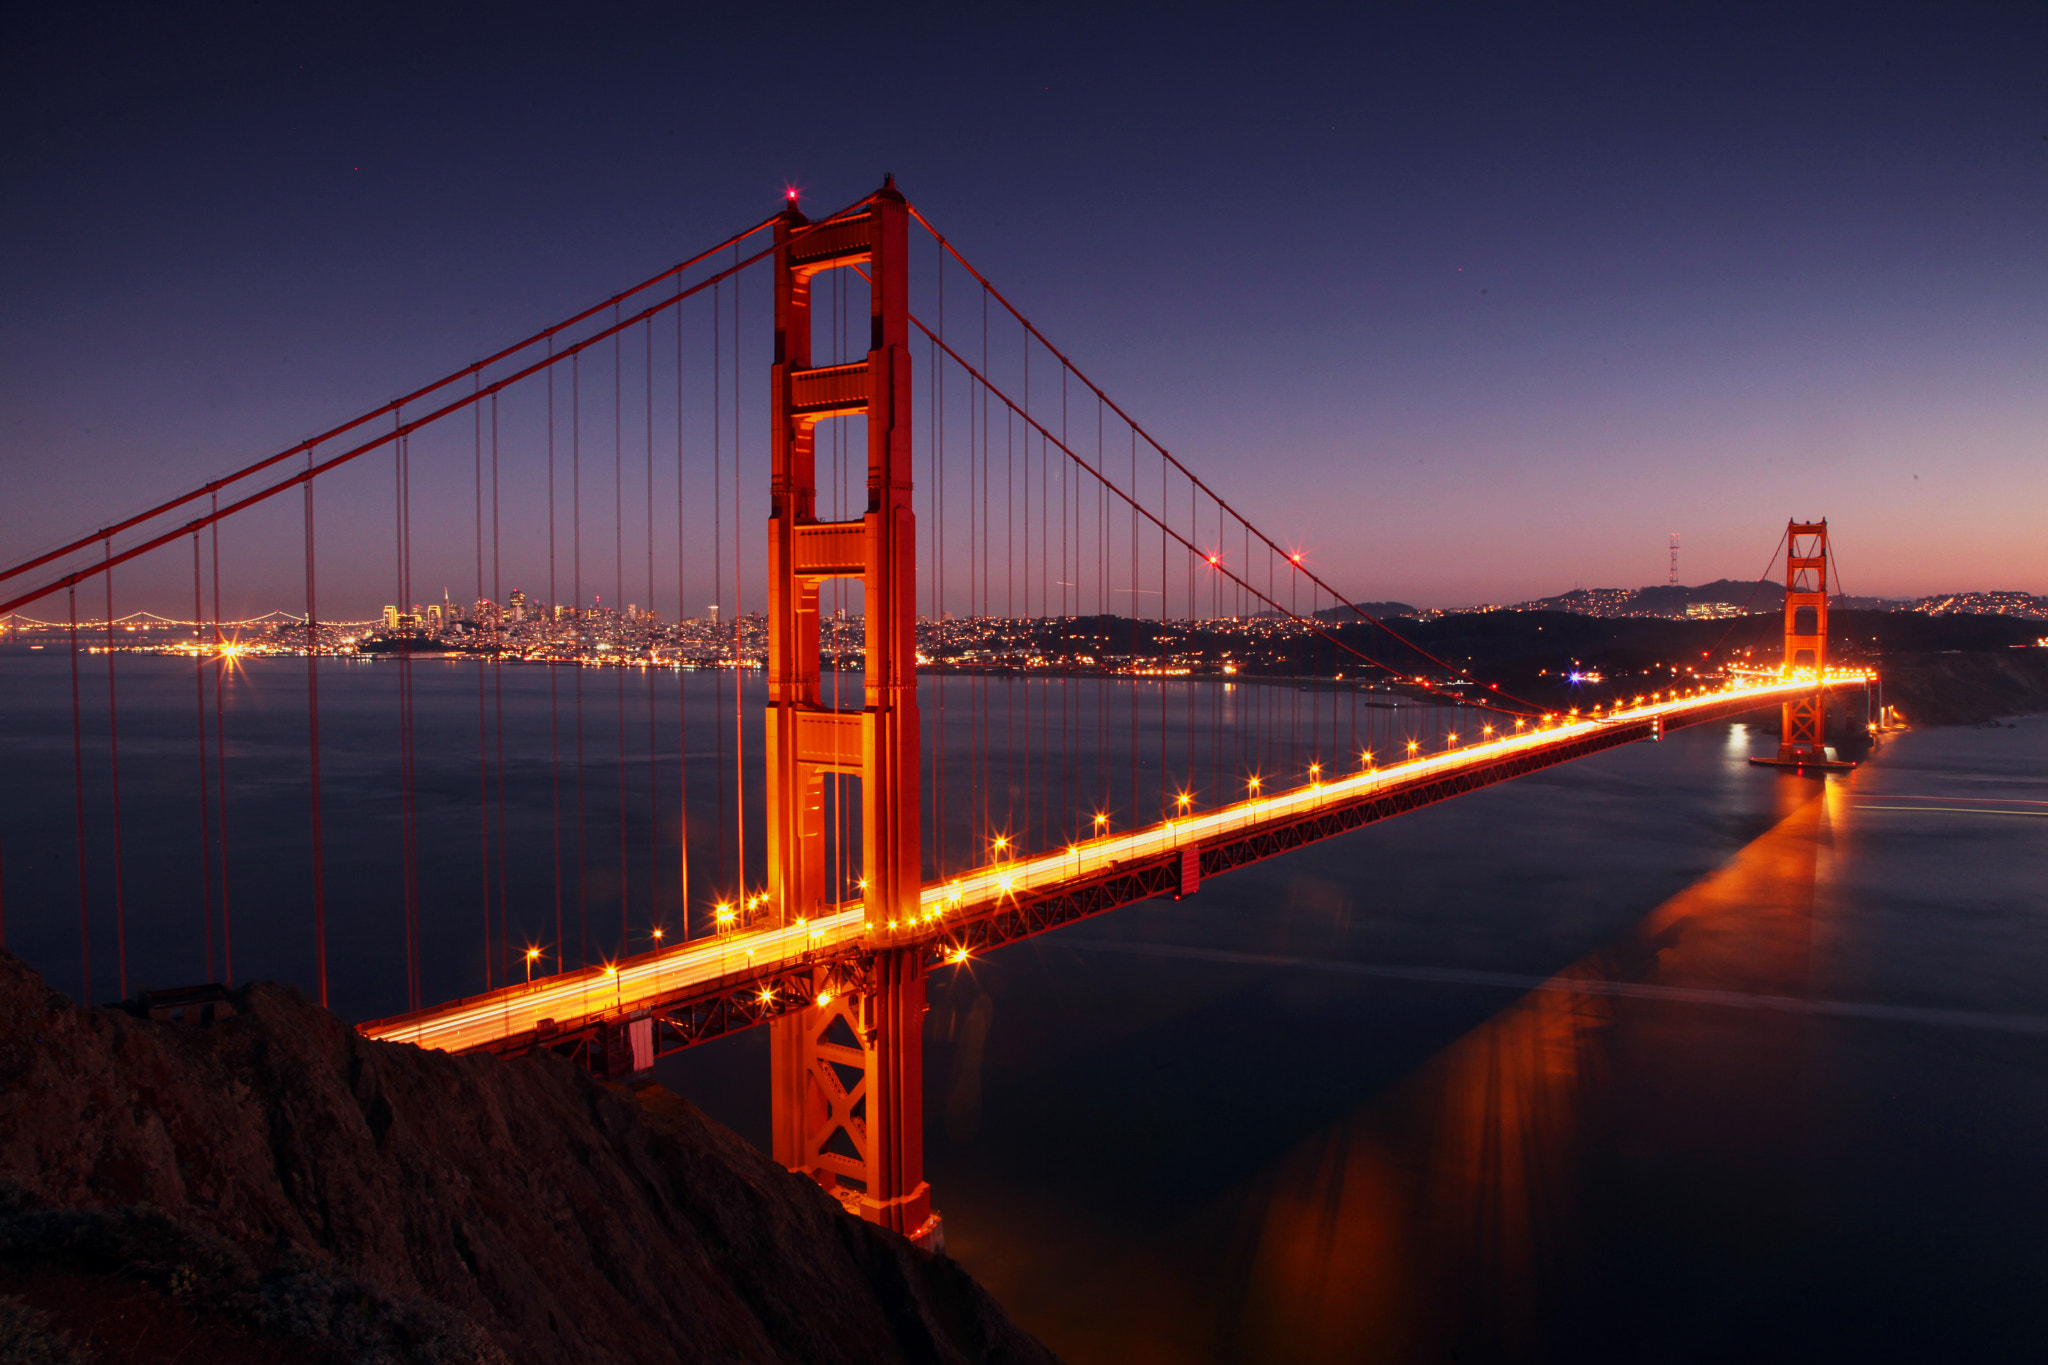 Photograph Golden Gate Glow at Dusk by Pongky Nataatmaja on 500px